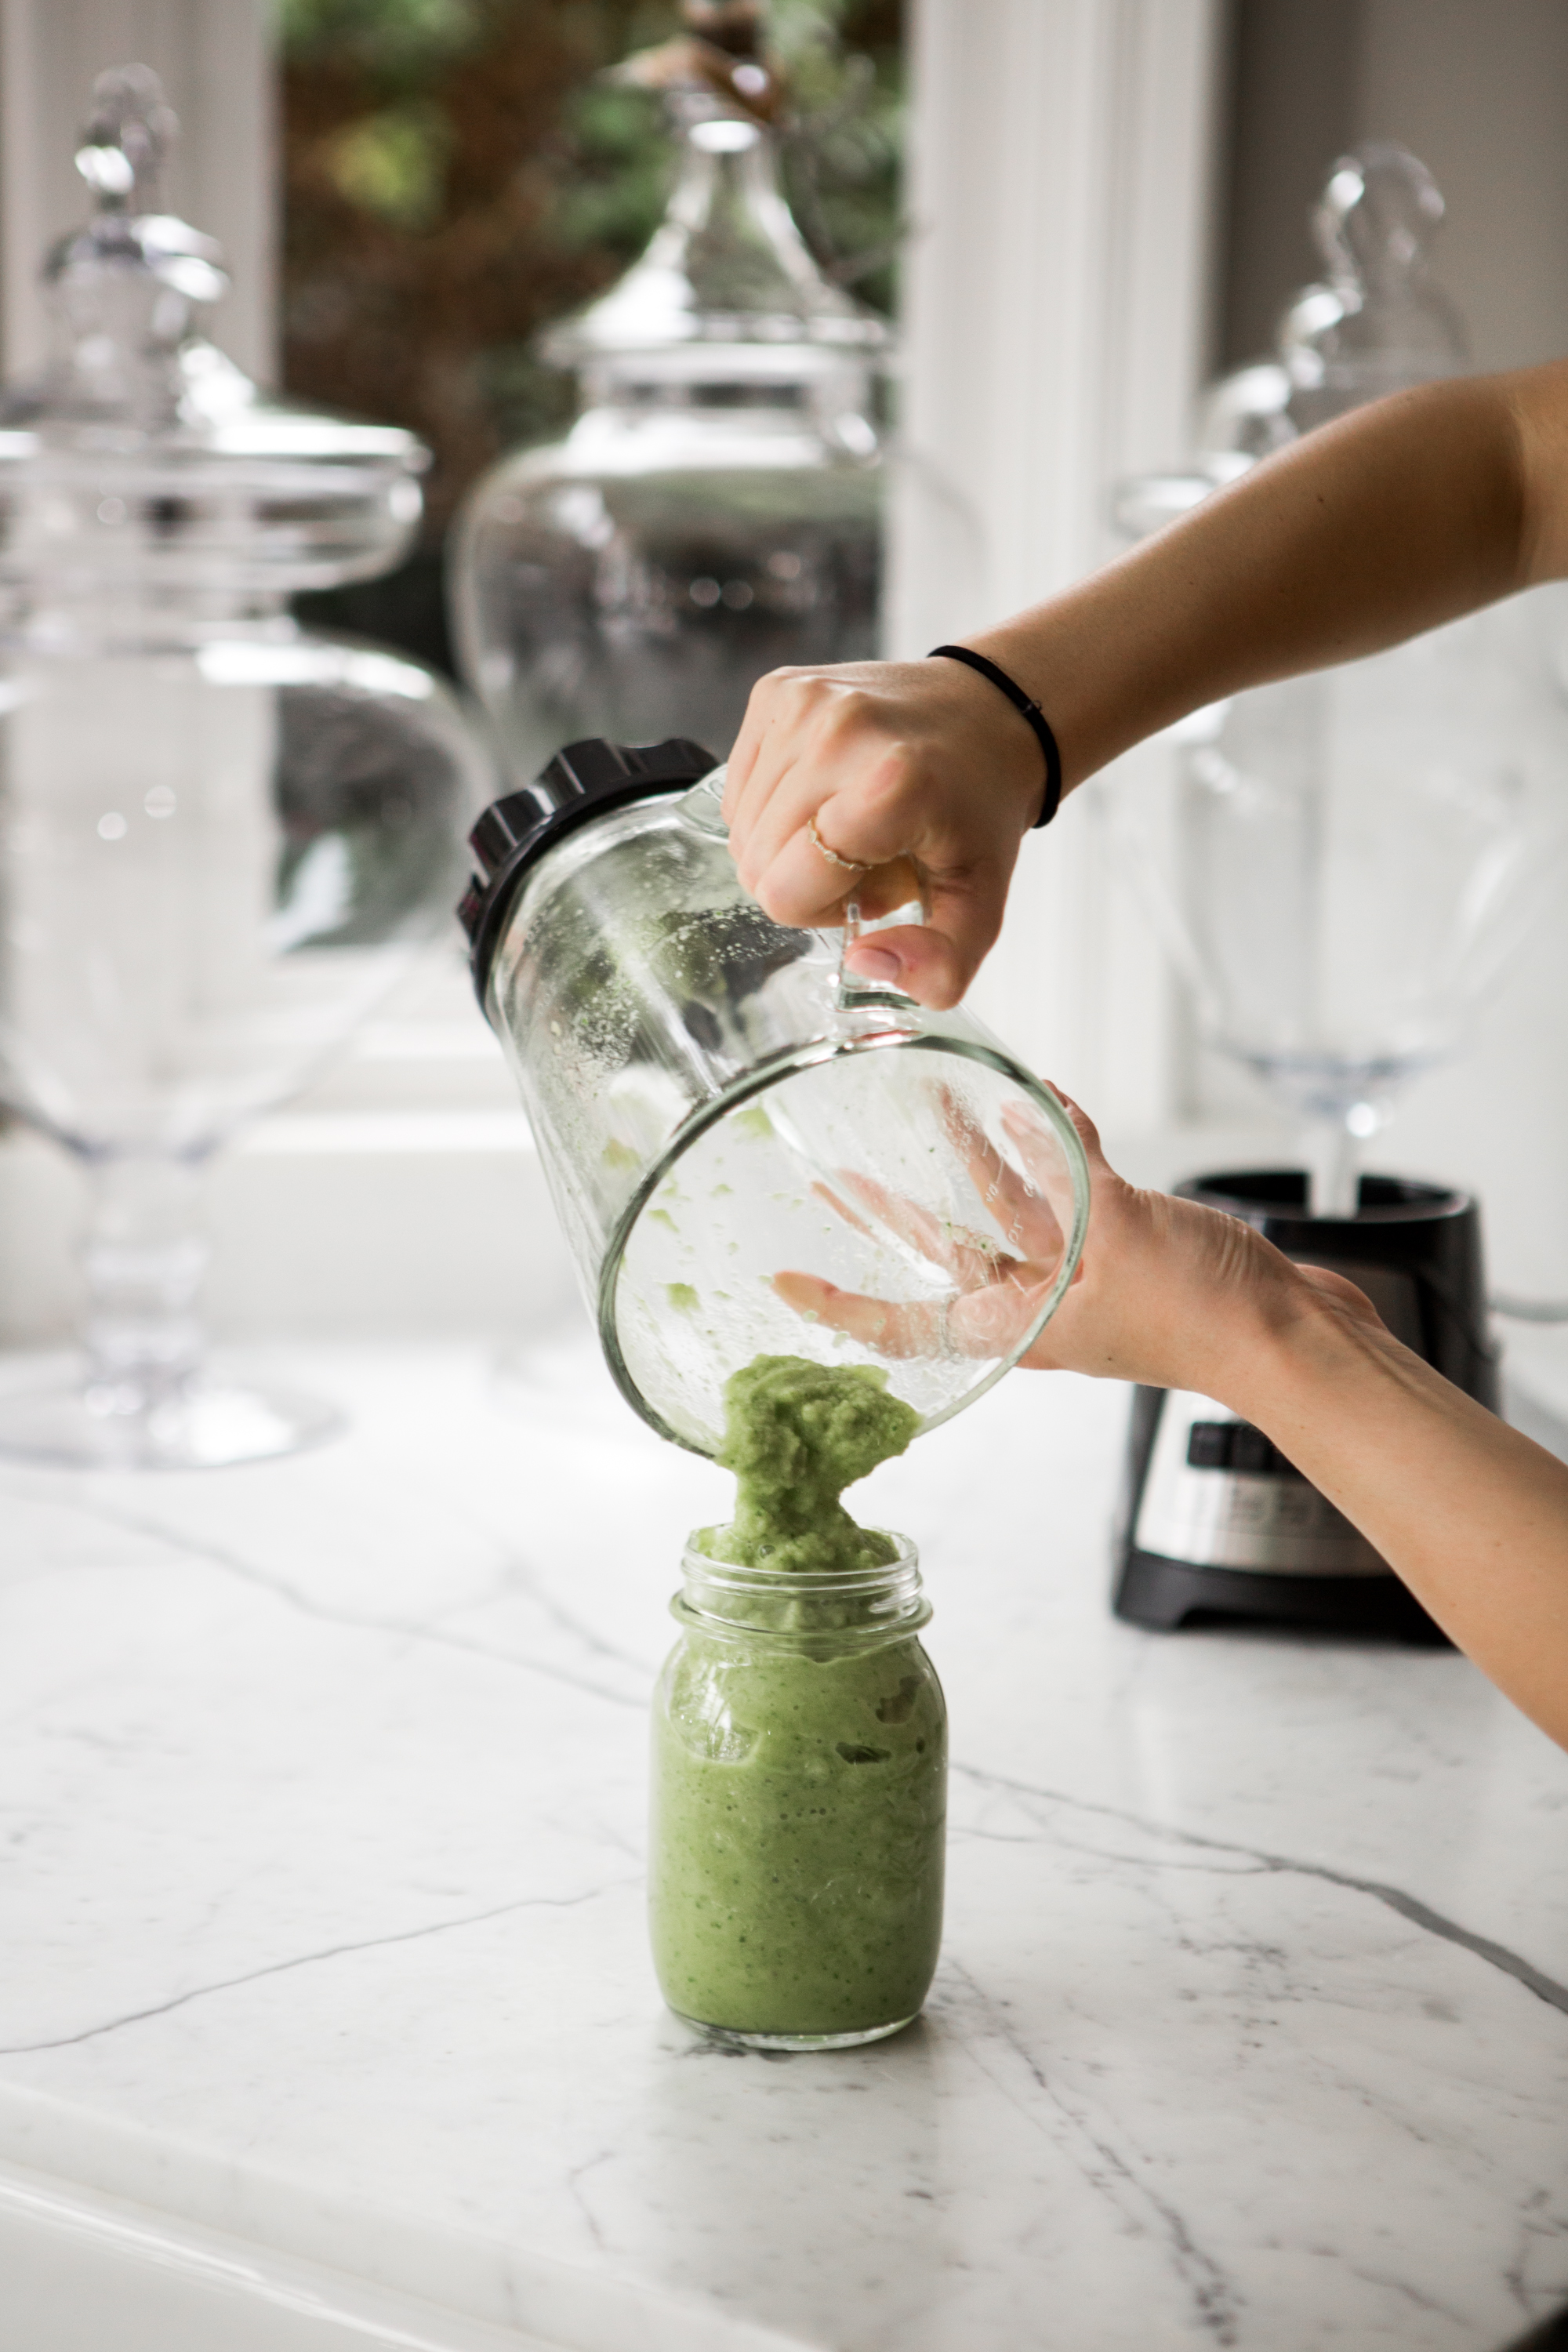 Julia Friedman's organic, tropical green smoothie recipe.